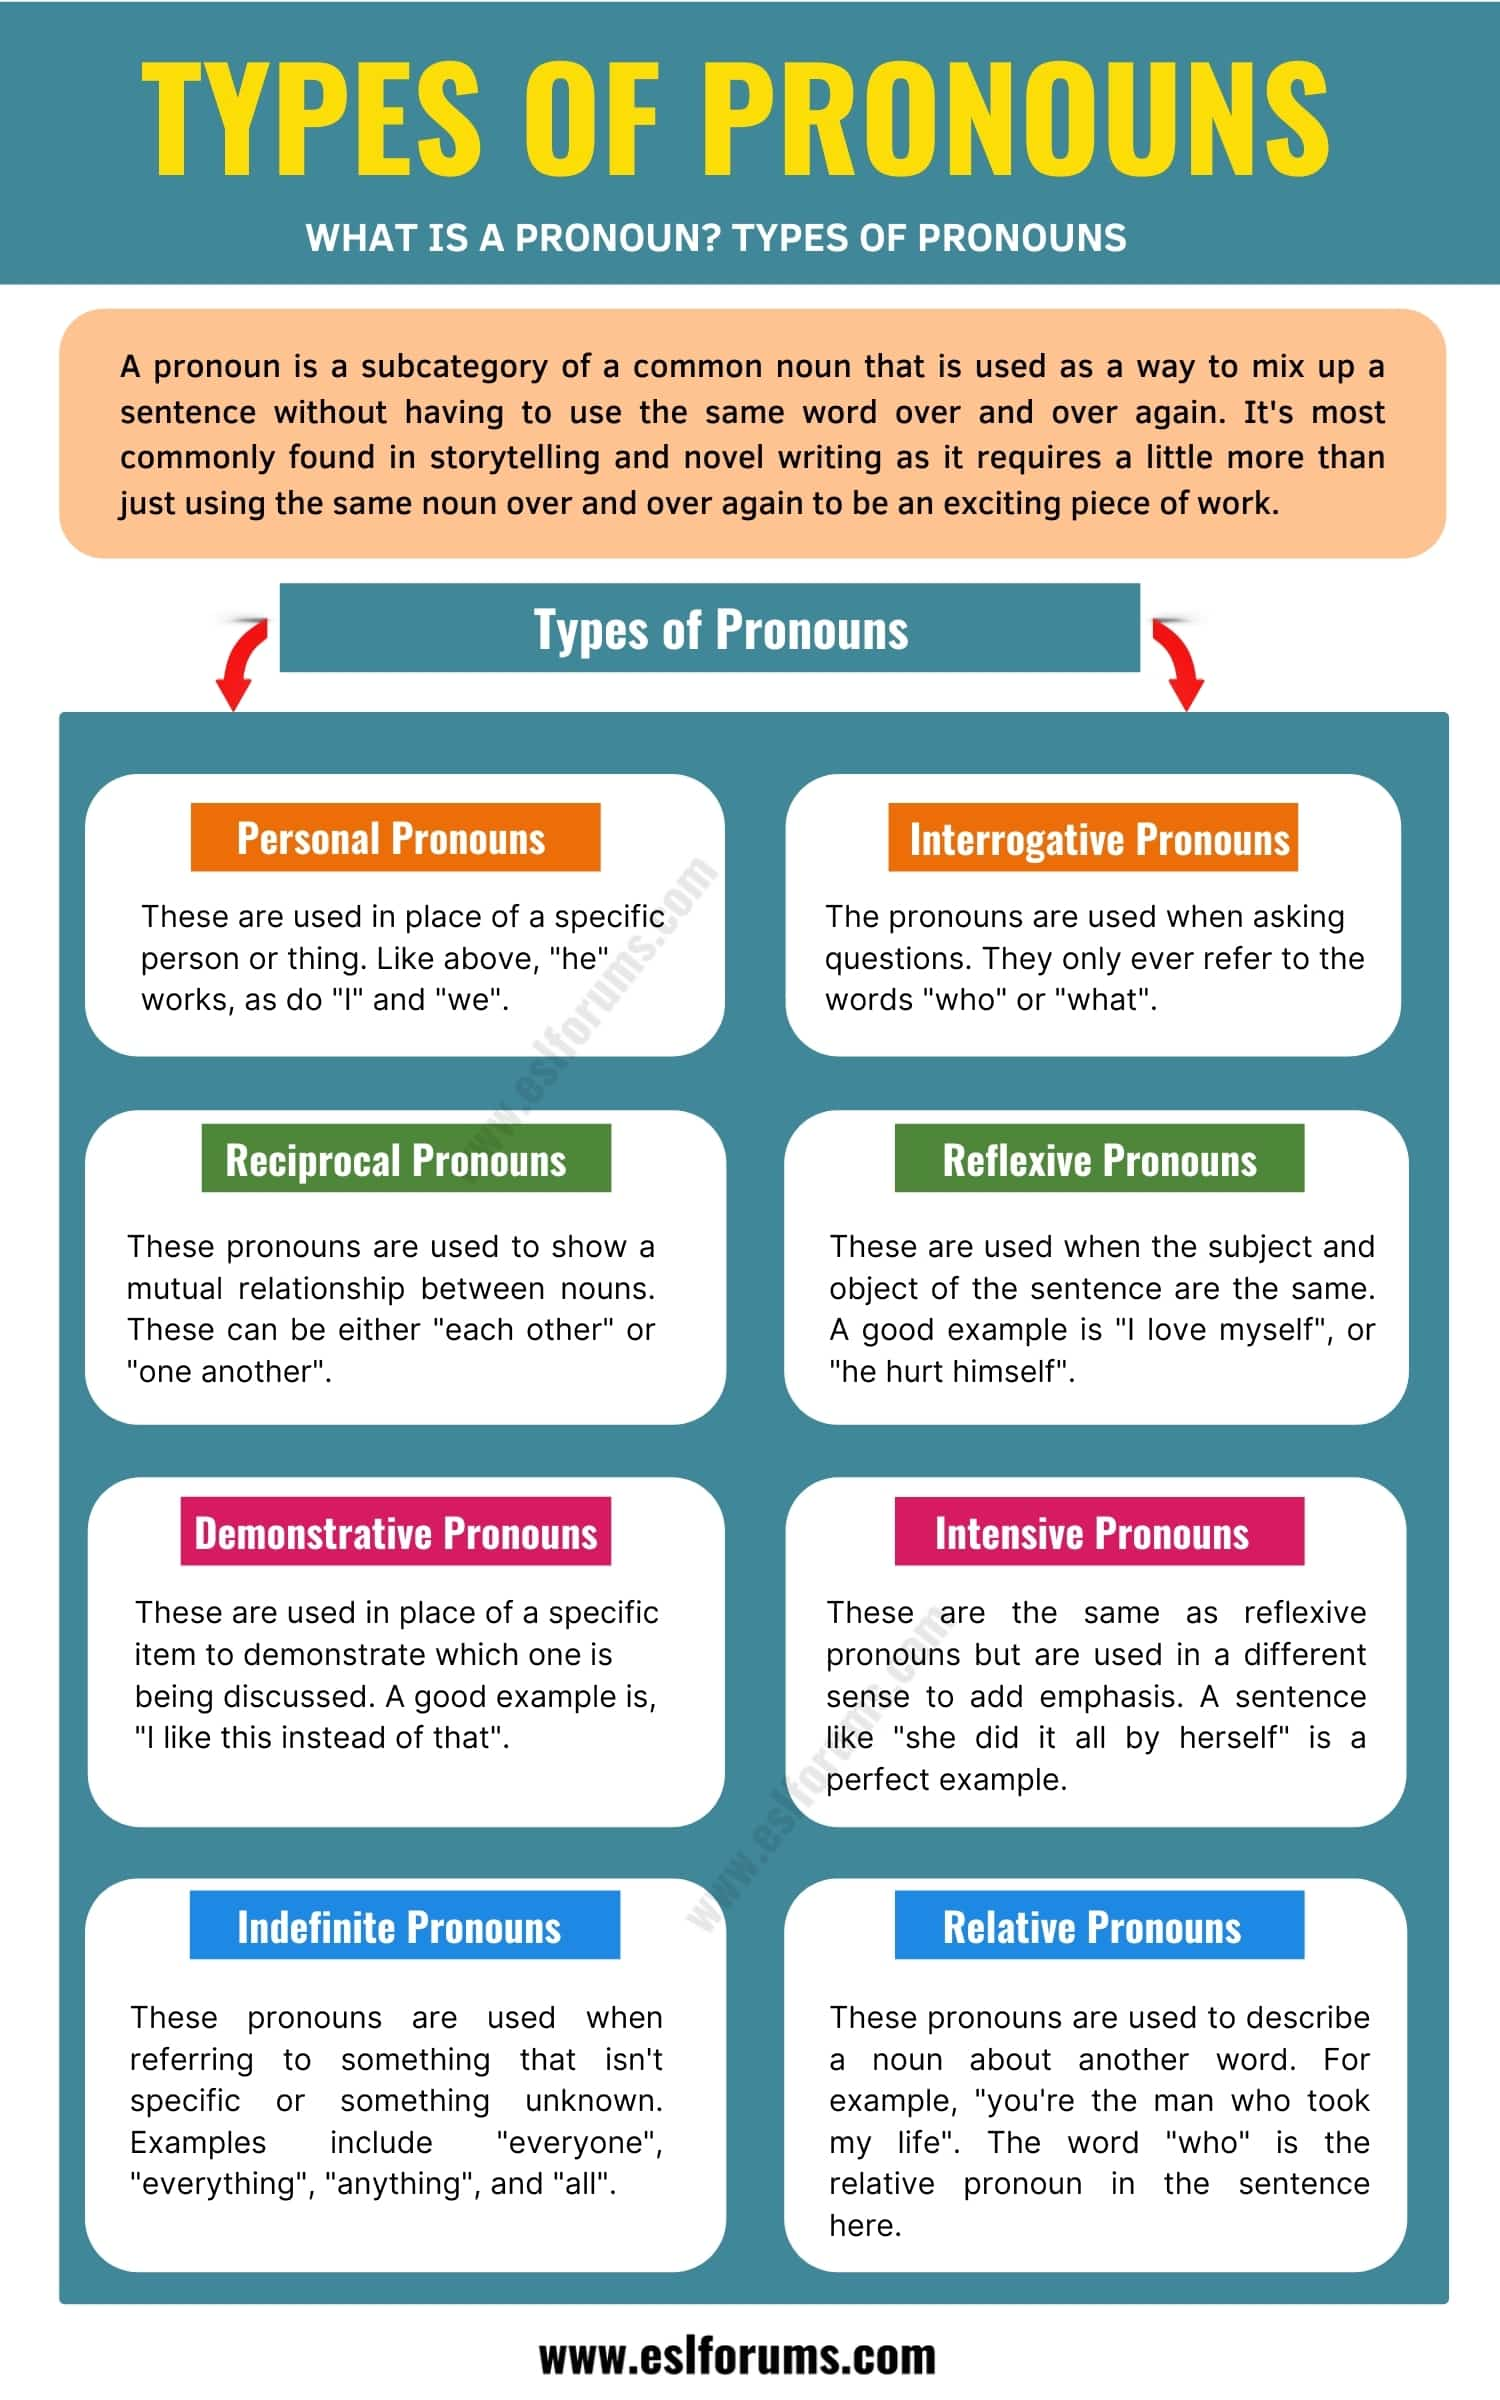 Pronouns | What Is a Pronoun? Types and Examples of Pronouns